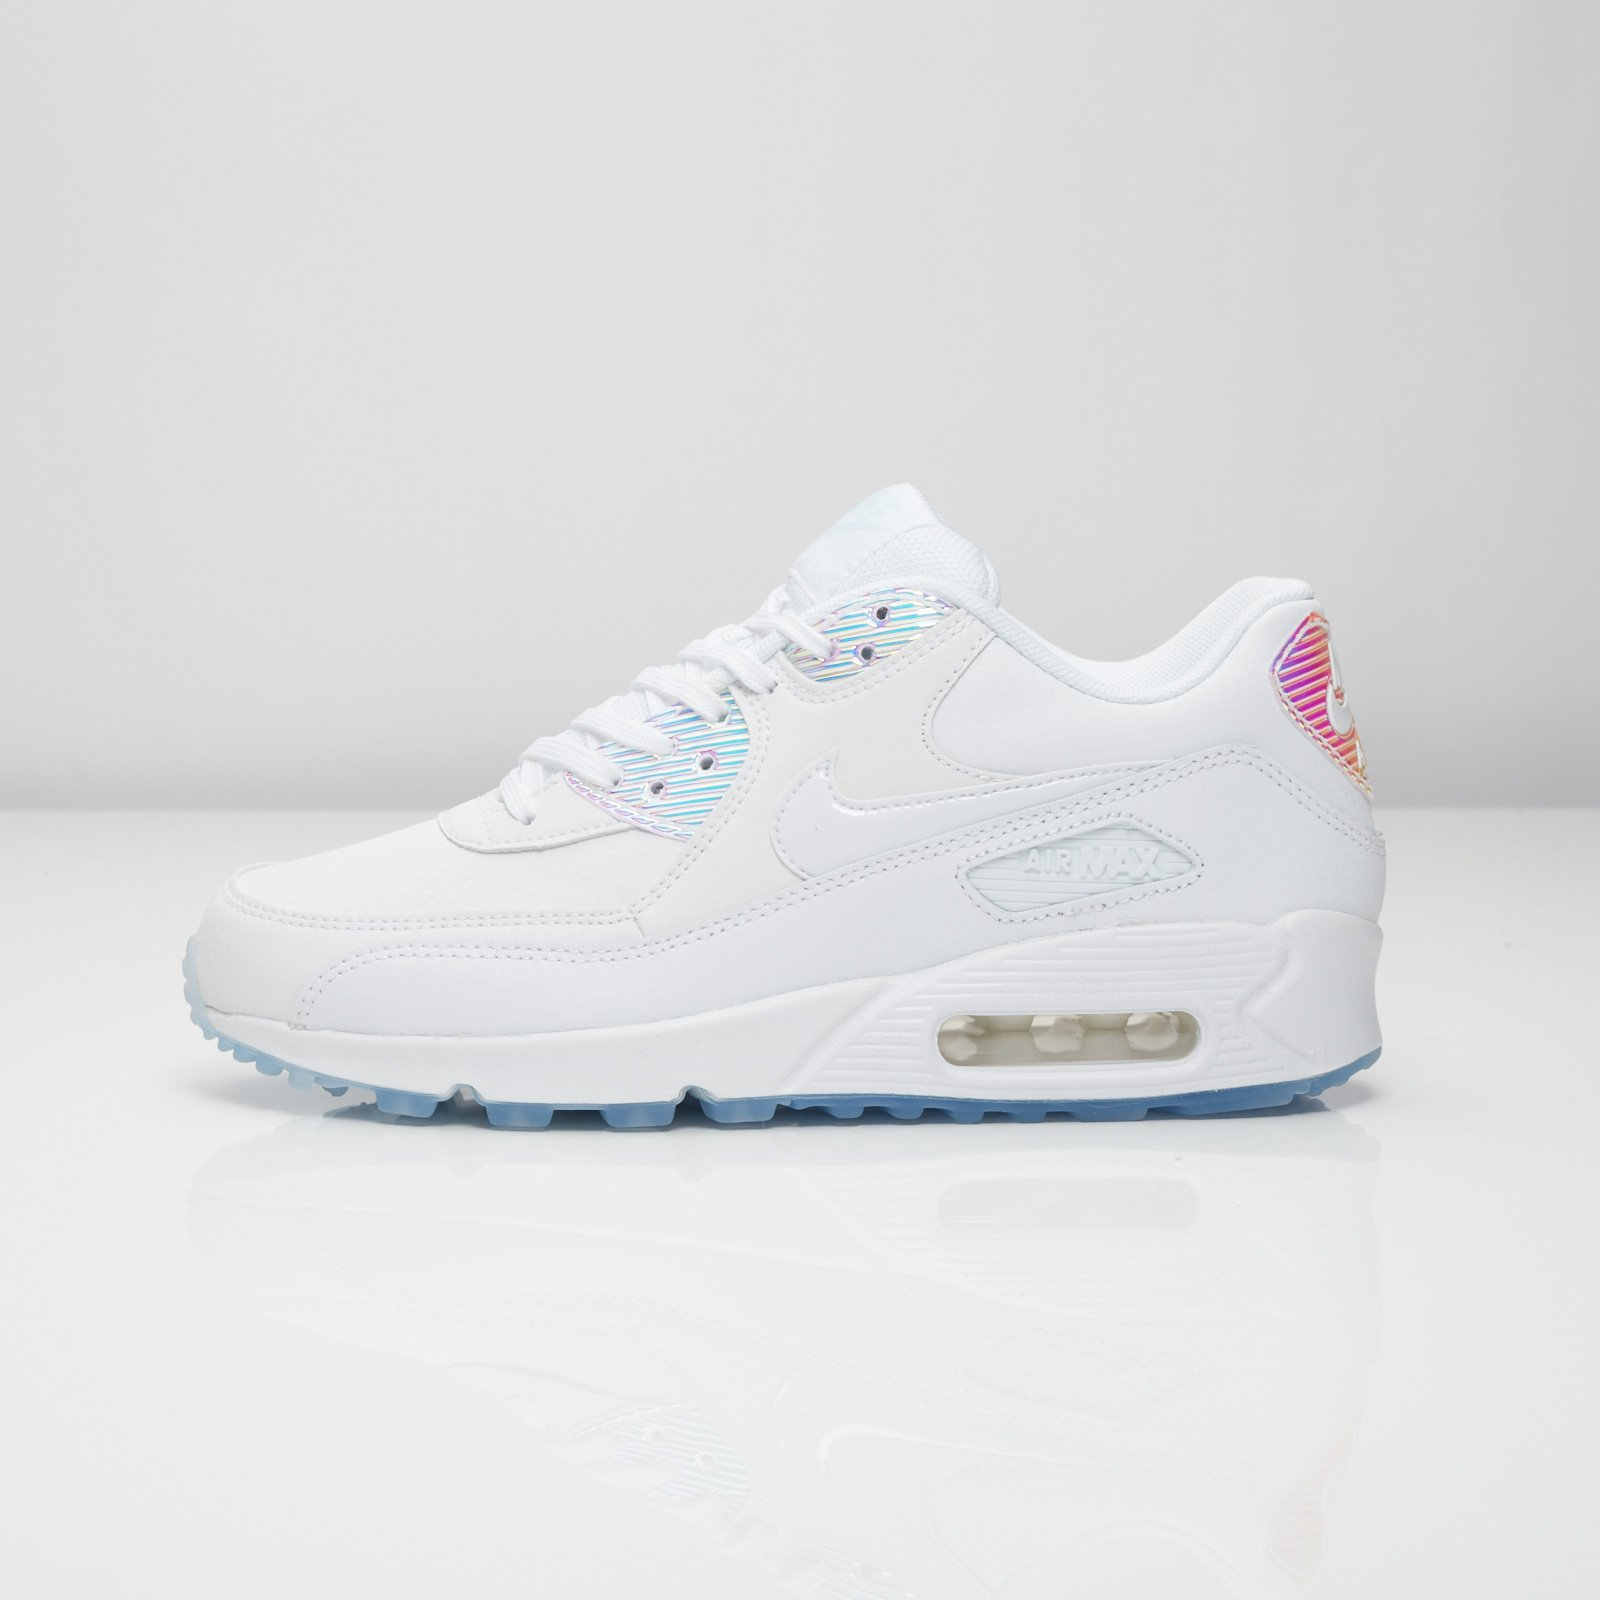 reputable site 04ccf 3e9c5 ... low cost nike wmns air max 90 premium 32196 94a37